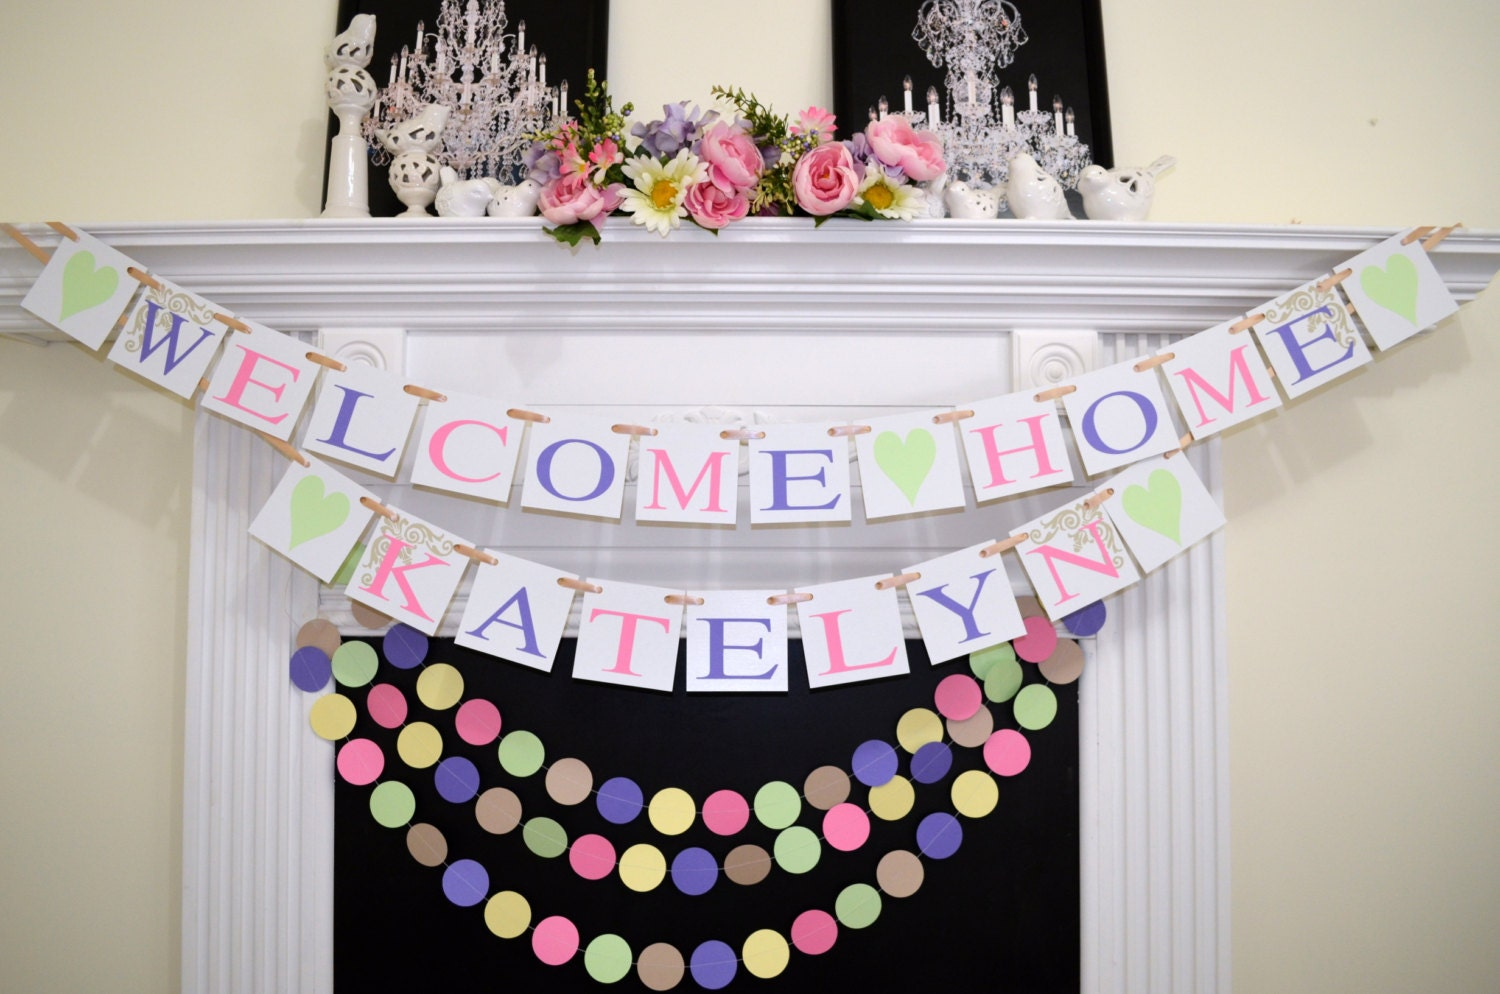 Welcome home baby decorations images for Welcome home decorations